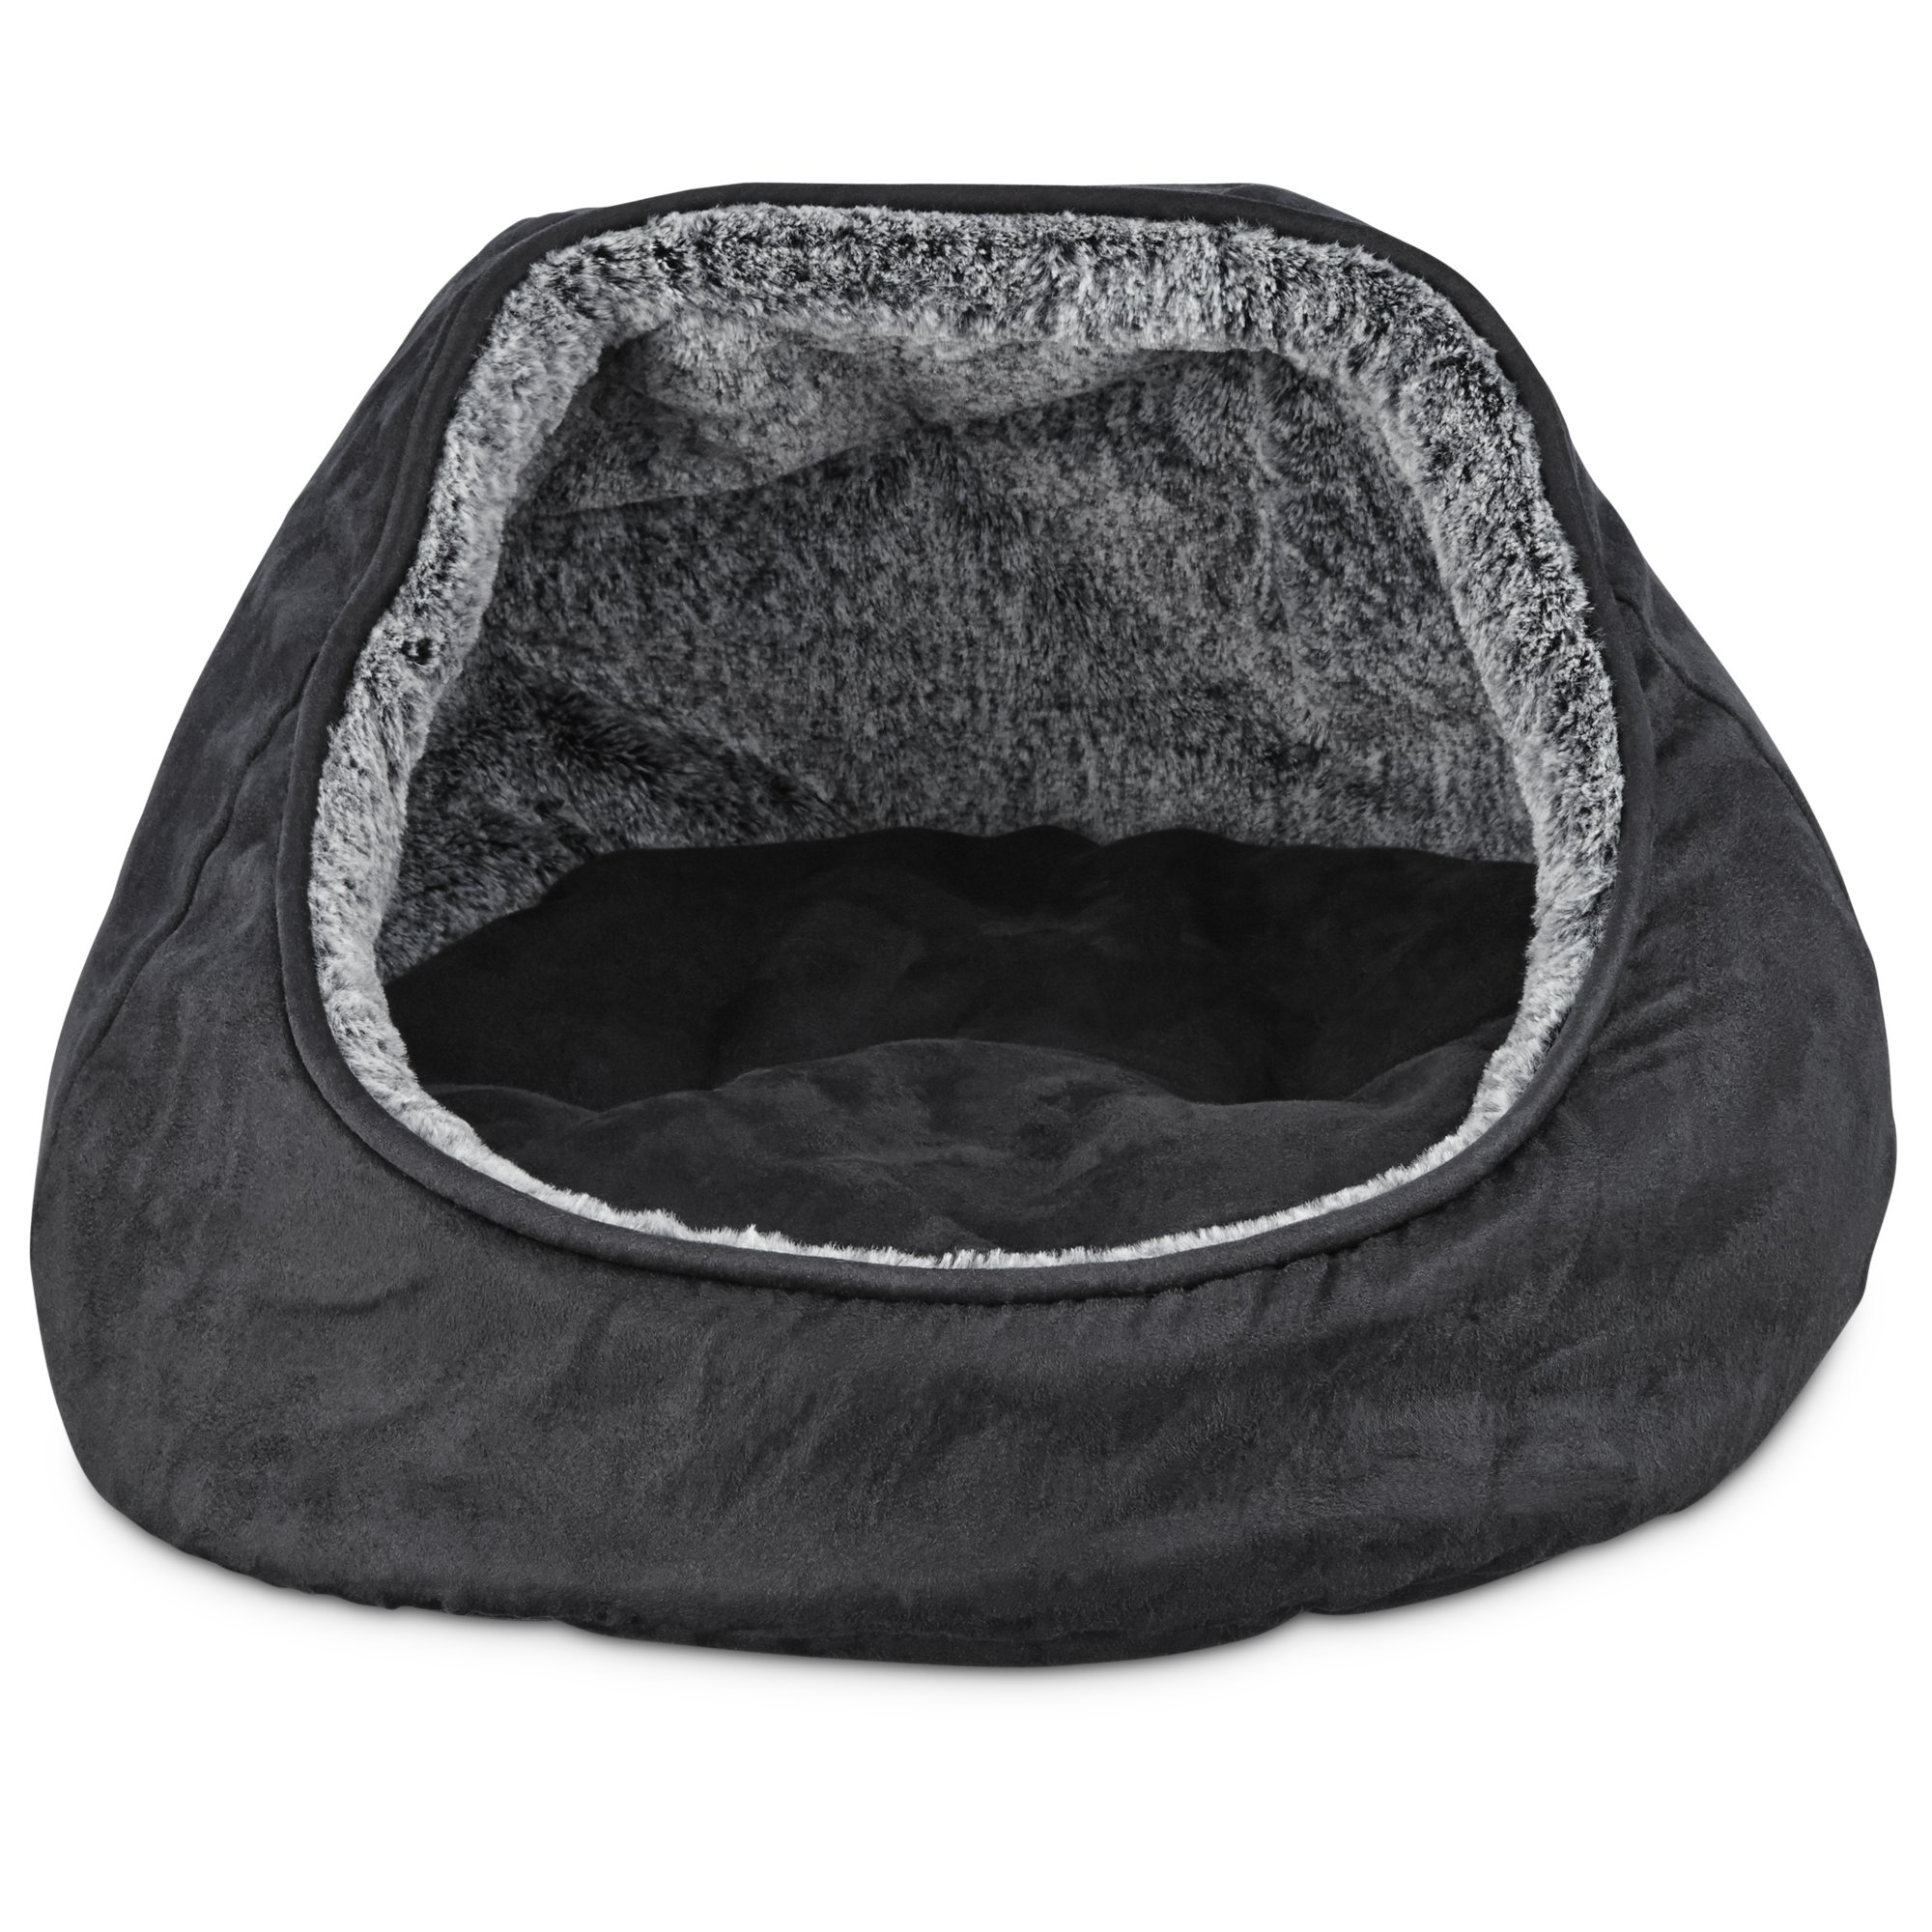 Dome Shaped Dog Beds